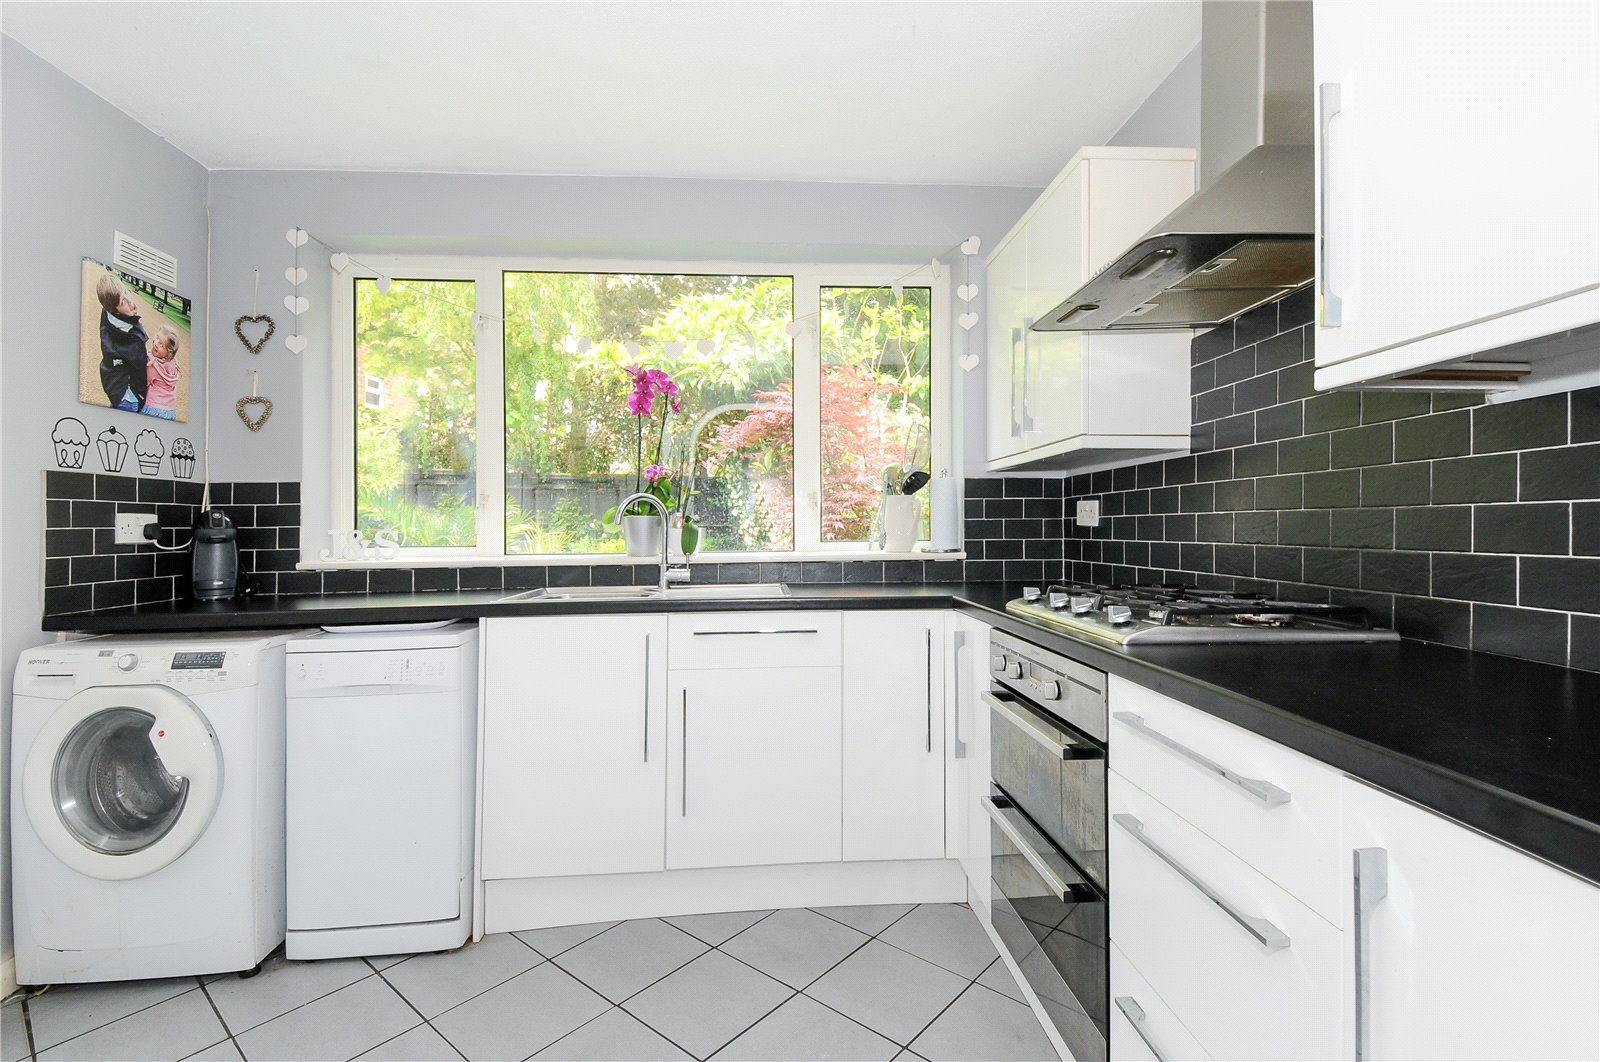 3 Bedrooms Semi Detached House for sale in New Meadow, Ascot, Berkshire, SL5